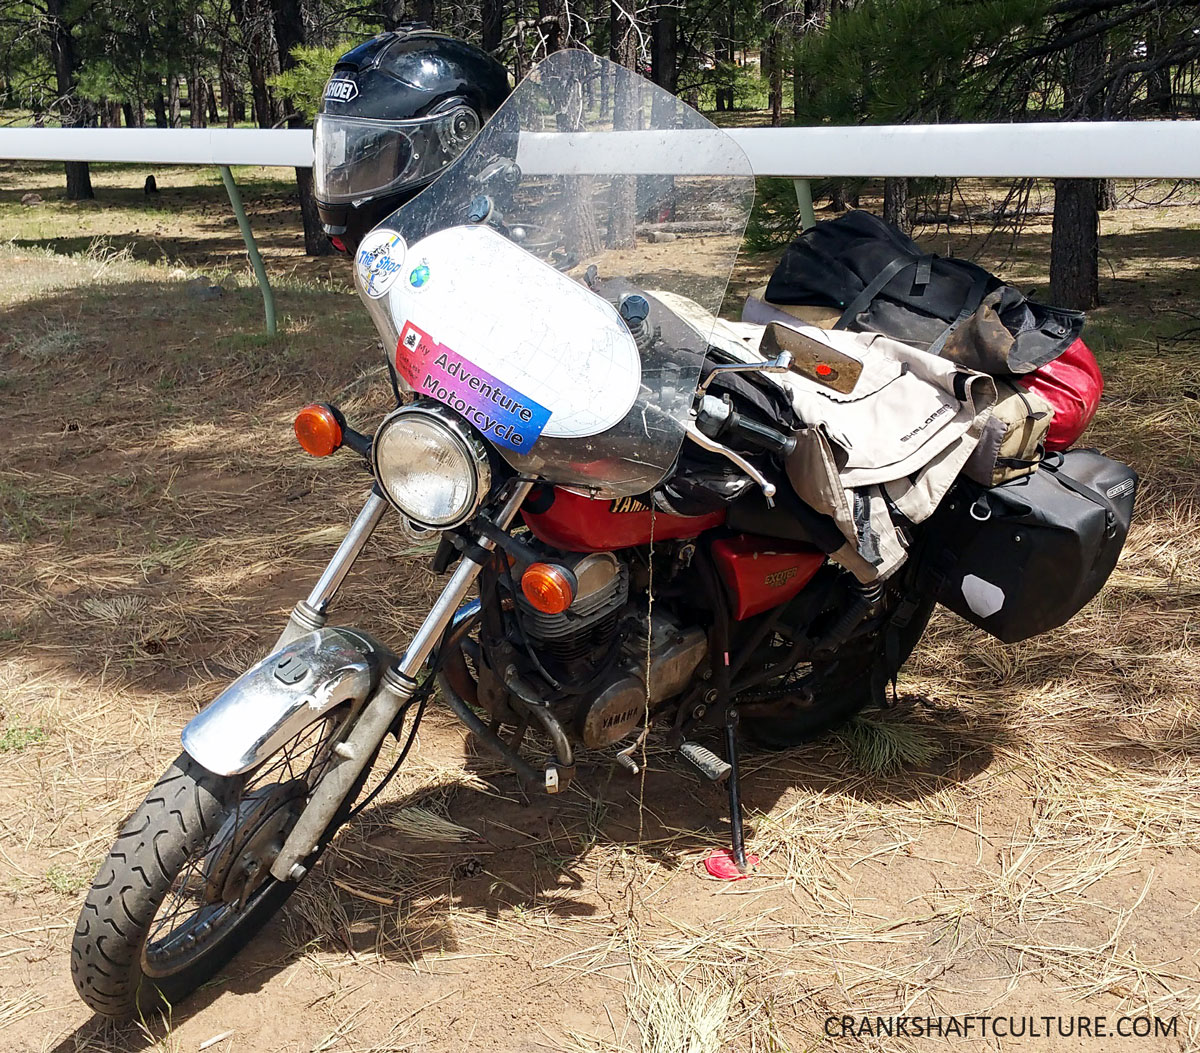 ' ' from the web at 'http://crankshaftculture.com/wp-content/uploads/2017/05/Andrew-C.-Pains-motorbike.jpg'